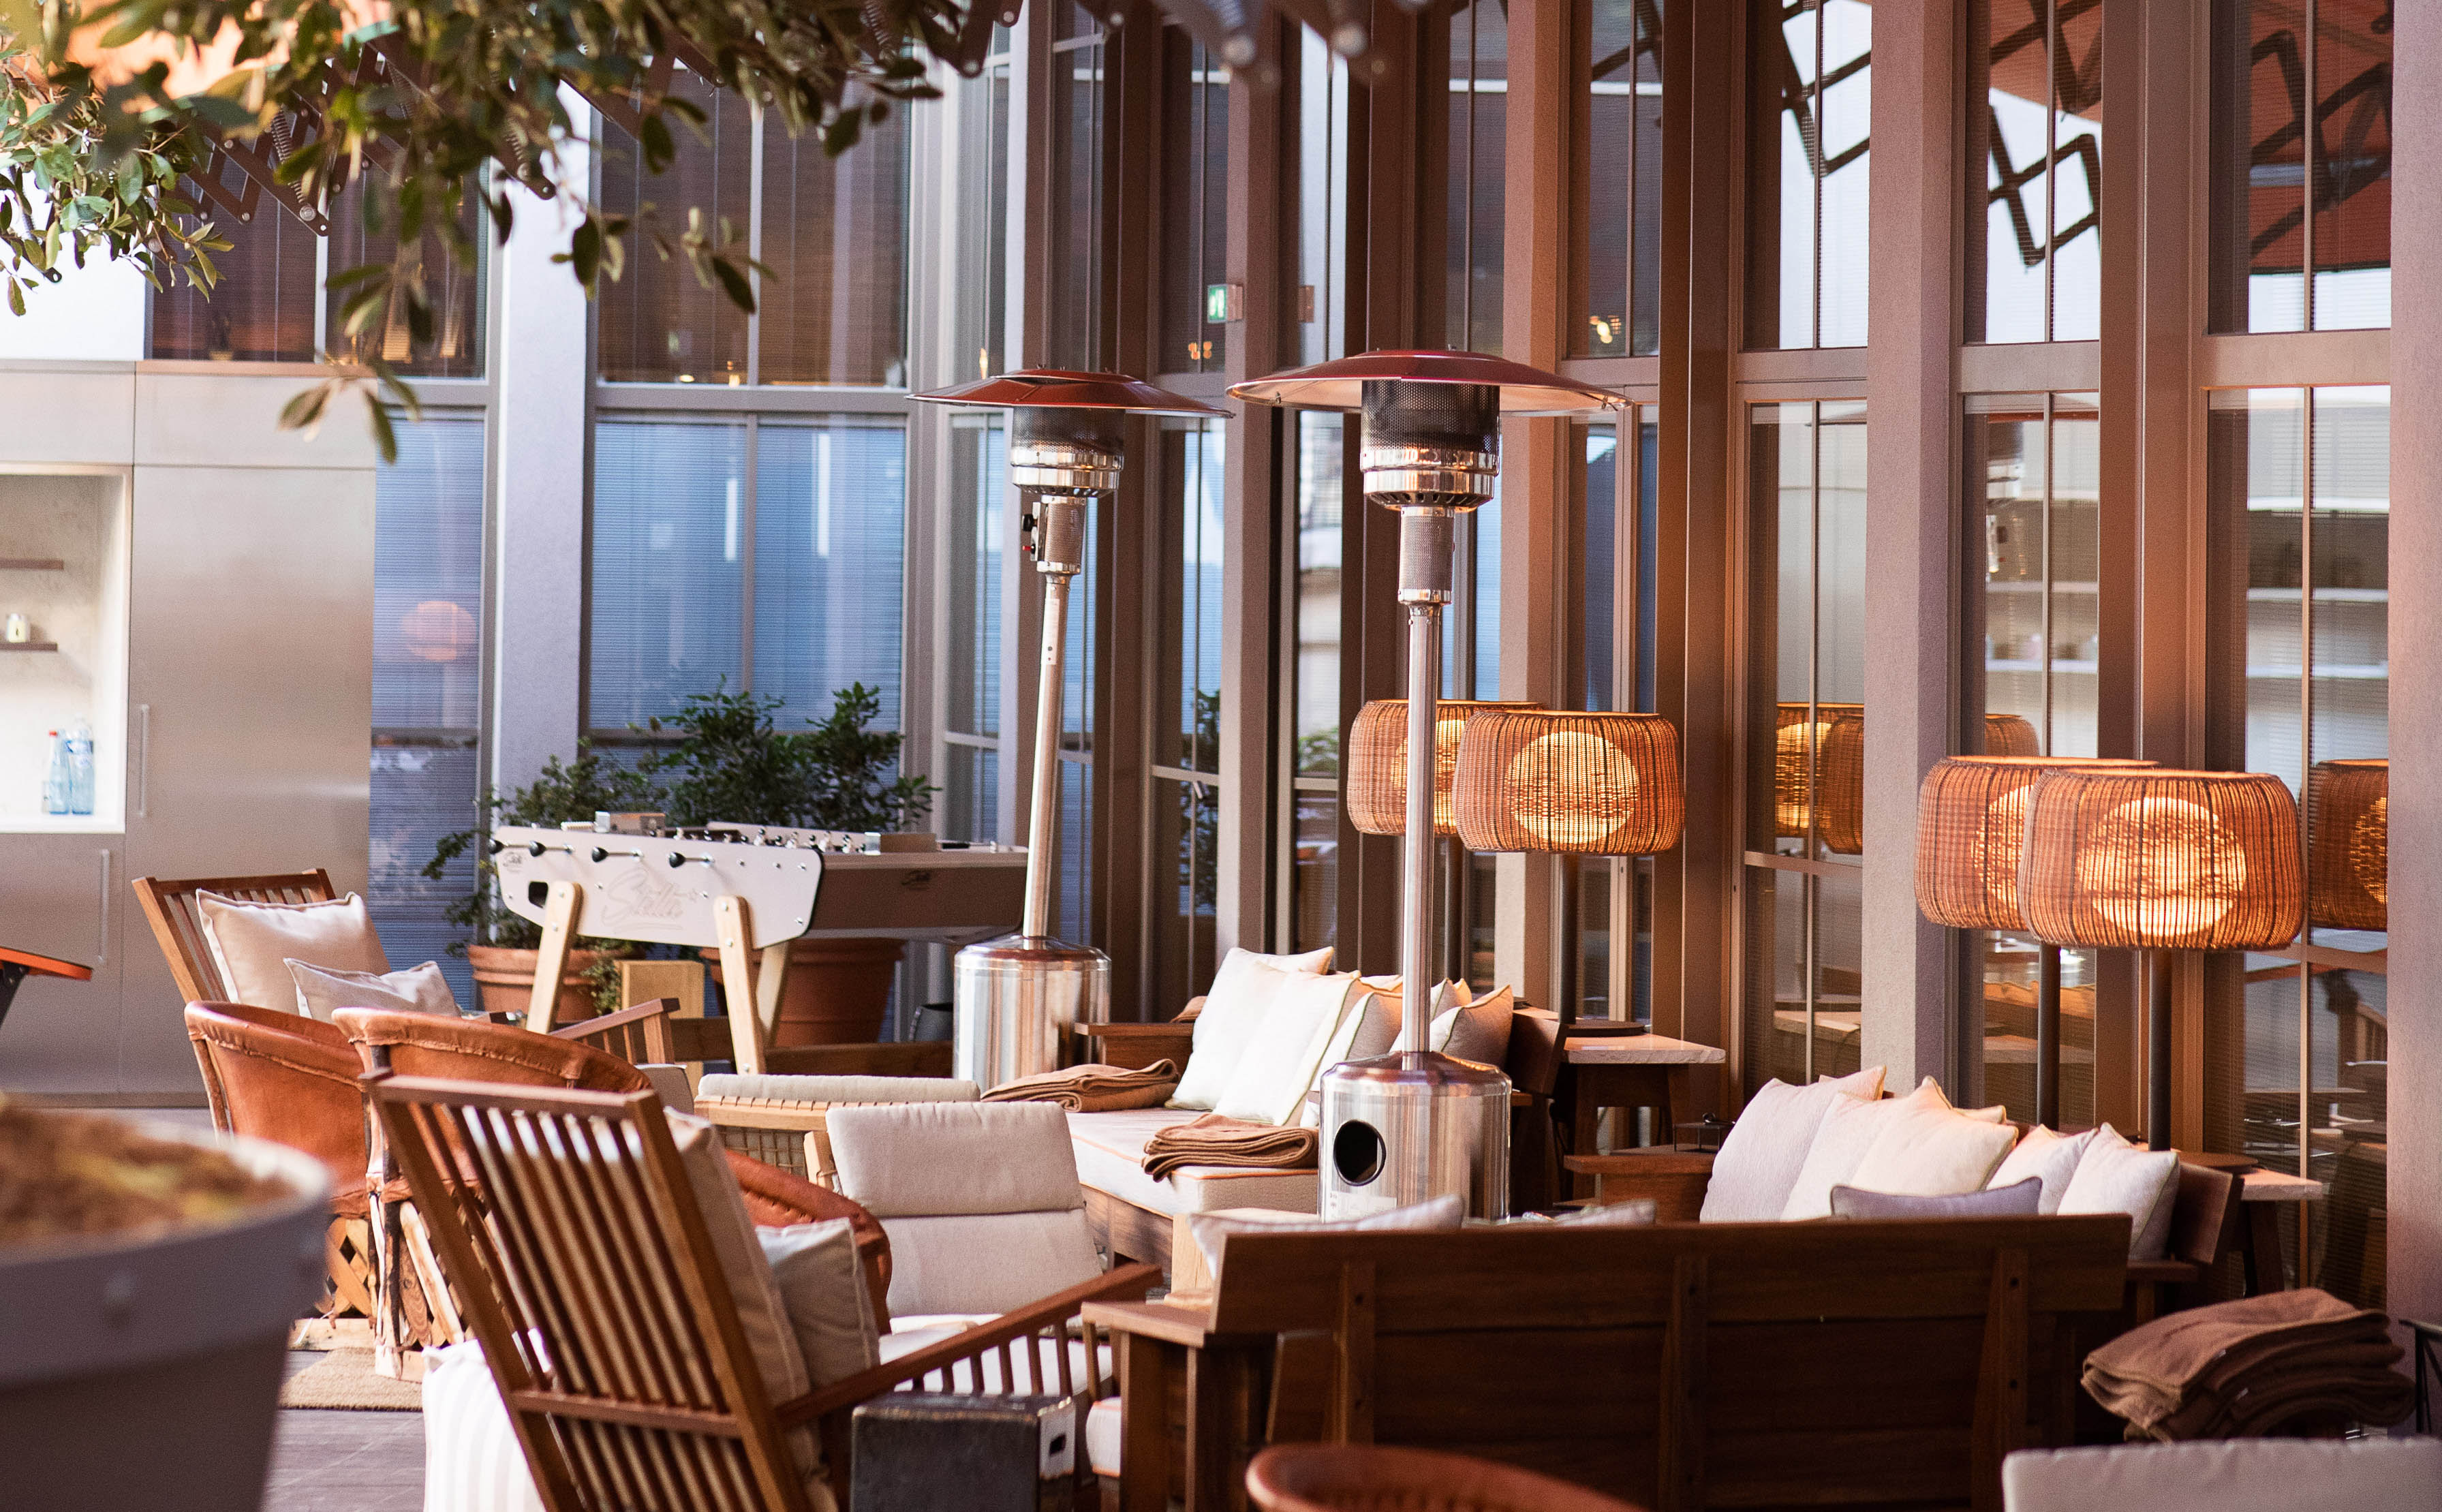 Terrasse Hotel Paris Brach Luxury Design Hotel 5 Stars By Starck Paris 16 Evok Hotels